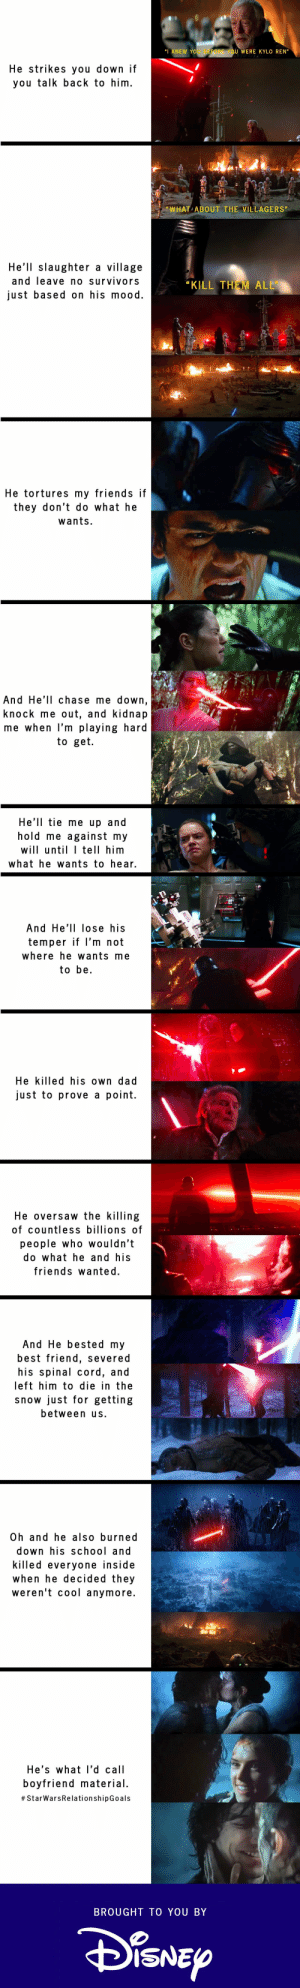 """Relationships according to Disney: """"I KNEW YOU BEFORE YOU WERE KYLO REN""""  He strikes you down if  you talk back to him.  """"WHAT ABOUT THE VILLAGERS""""  He'll slaughter a village  and leave no survivors  """"KILL THEM ALL""""  just based on his mood.  He tortures my friends if  they don't do what he  wants.  And He'll chase me down,  knock me out, and kidnap  me when l'm playing hard  to get.  He'll tie me up and  hold me against my  will until I tell him  what he wants to hear.  And He'll lose his  temper if l'm not  where he wants me  to be.  He killed his own dad  just to prove a point.  He oversaw the killing  of countless billions of  people who wouldn't  do what he and his  friends wanted.  And He bested my  best friend, severed  his spinal cord, and  left him to die in the  snow just for getting  between us.  Oh and he also burned  down his school and  killed everyone inside  when he decided they  weren't cool anymore.  He's what l'd call  boyfriend material.  # StarWarsRelationshipGoals  BROUGHT TO YOU BY  SISNEY Relationships according to Disney"""